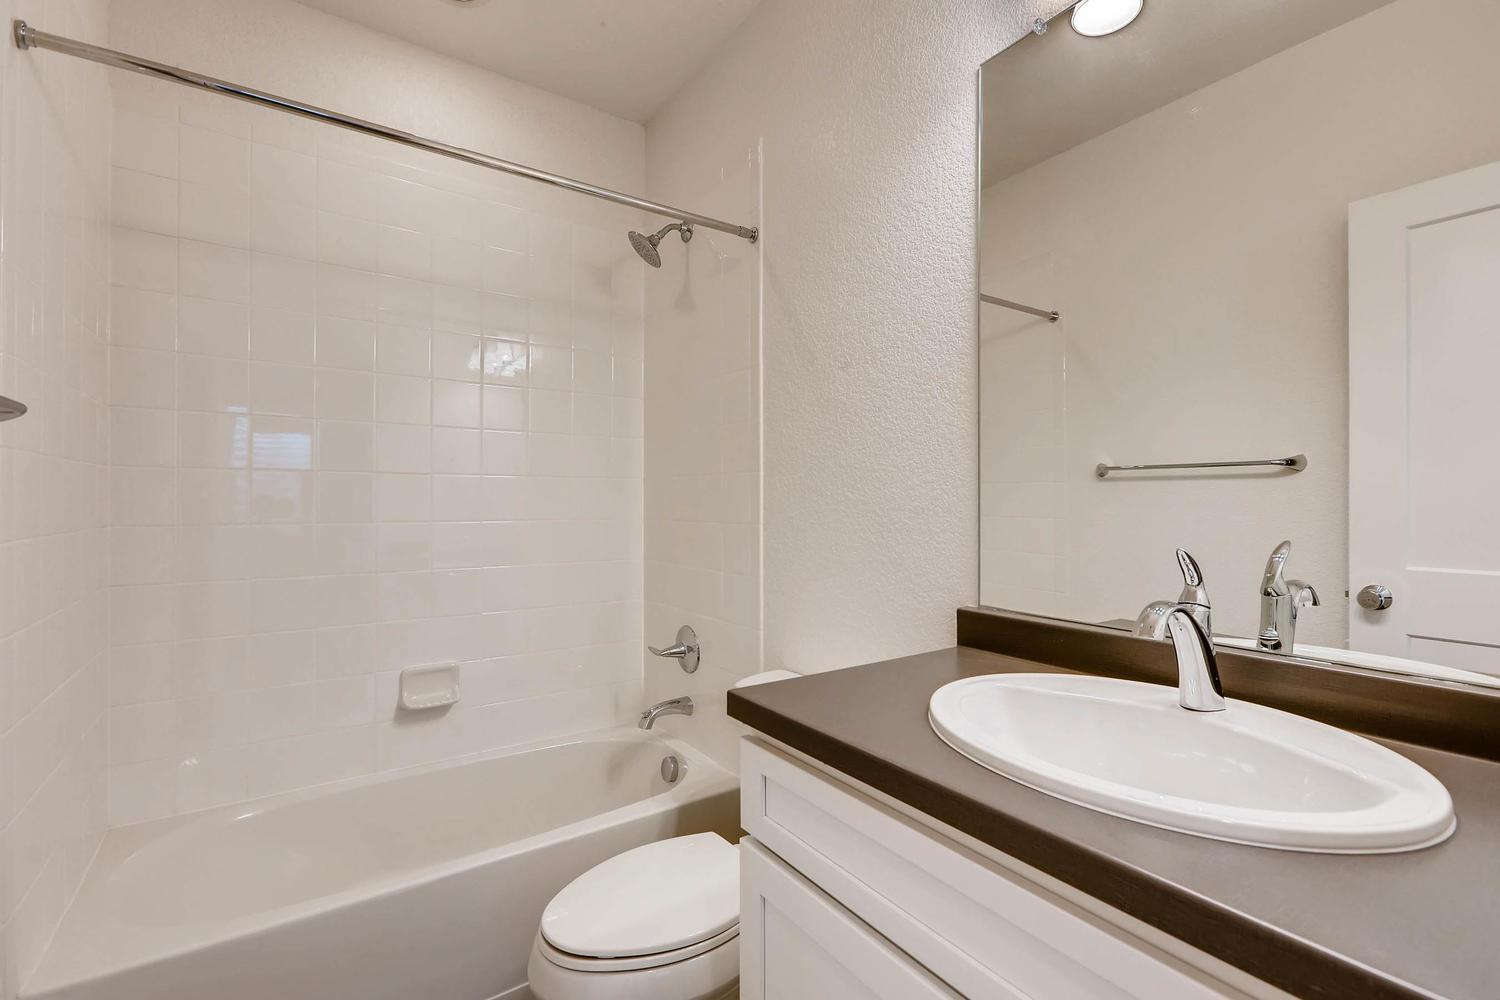 Additional photo for property listing at Lawrence 9261 East 61st Avenue Denver, Colorado 80238 United States